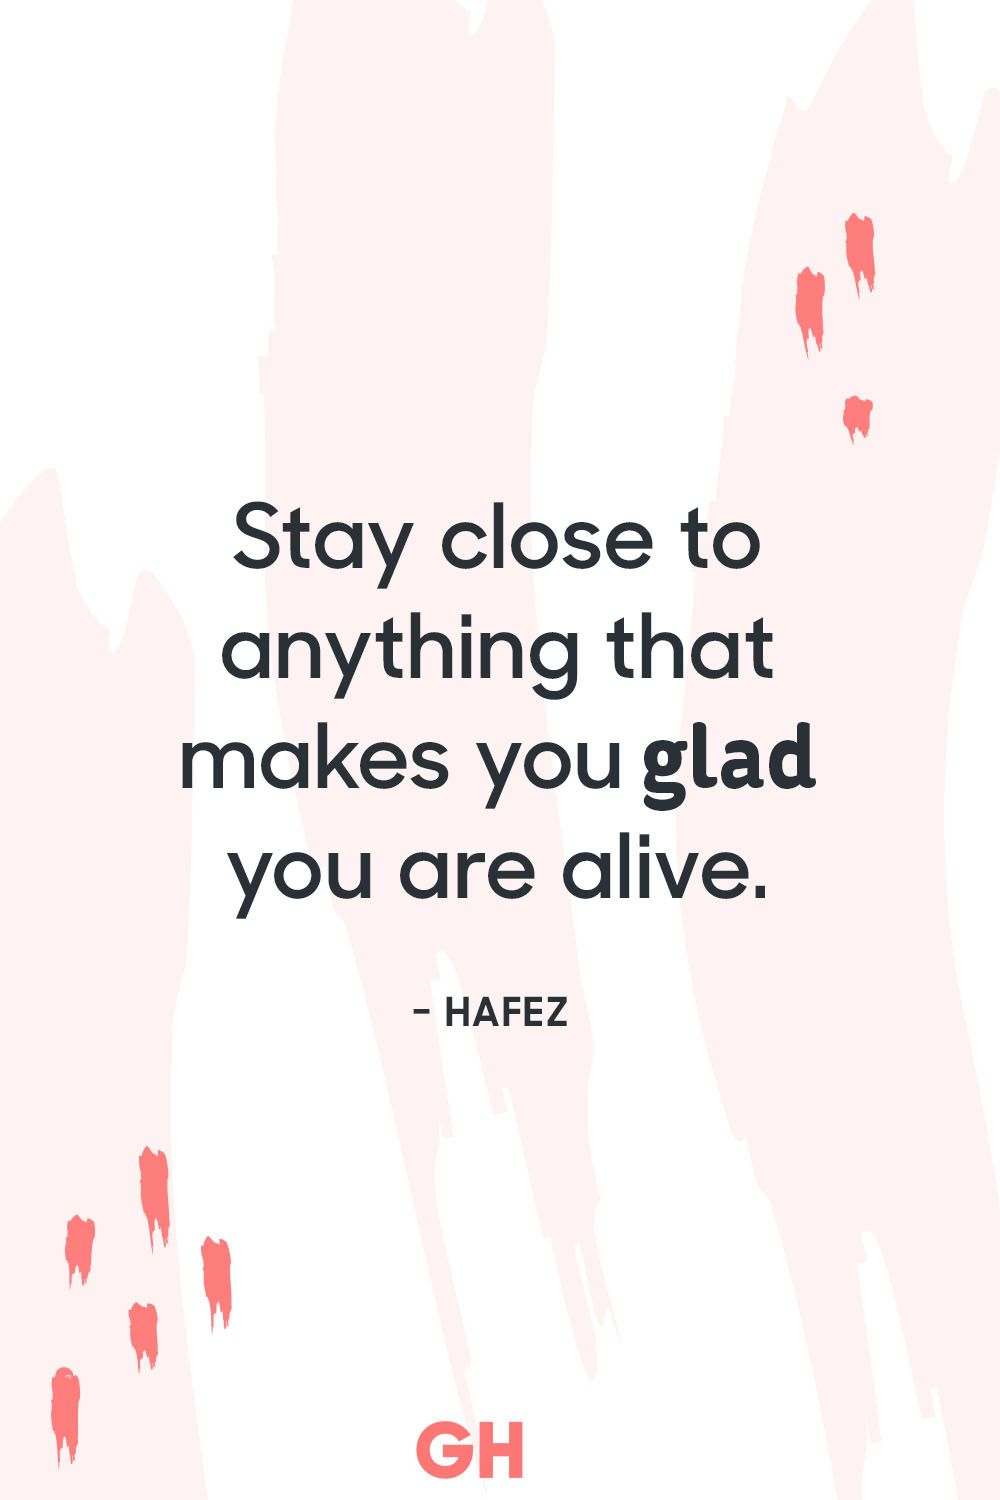 hafez optimistic quotes